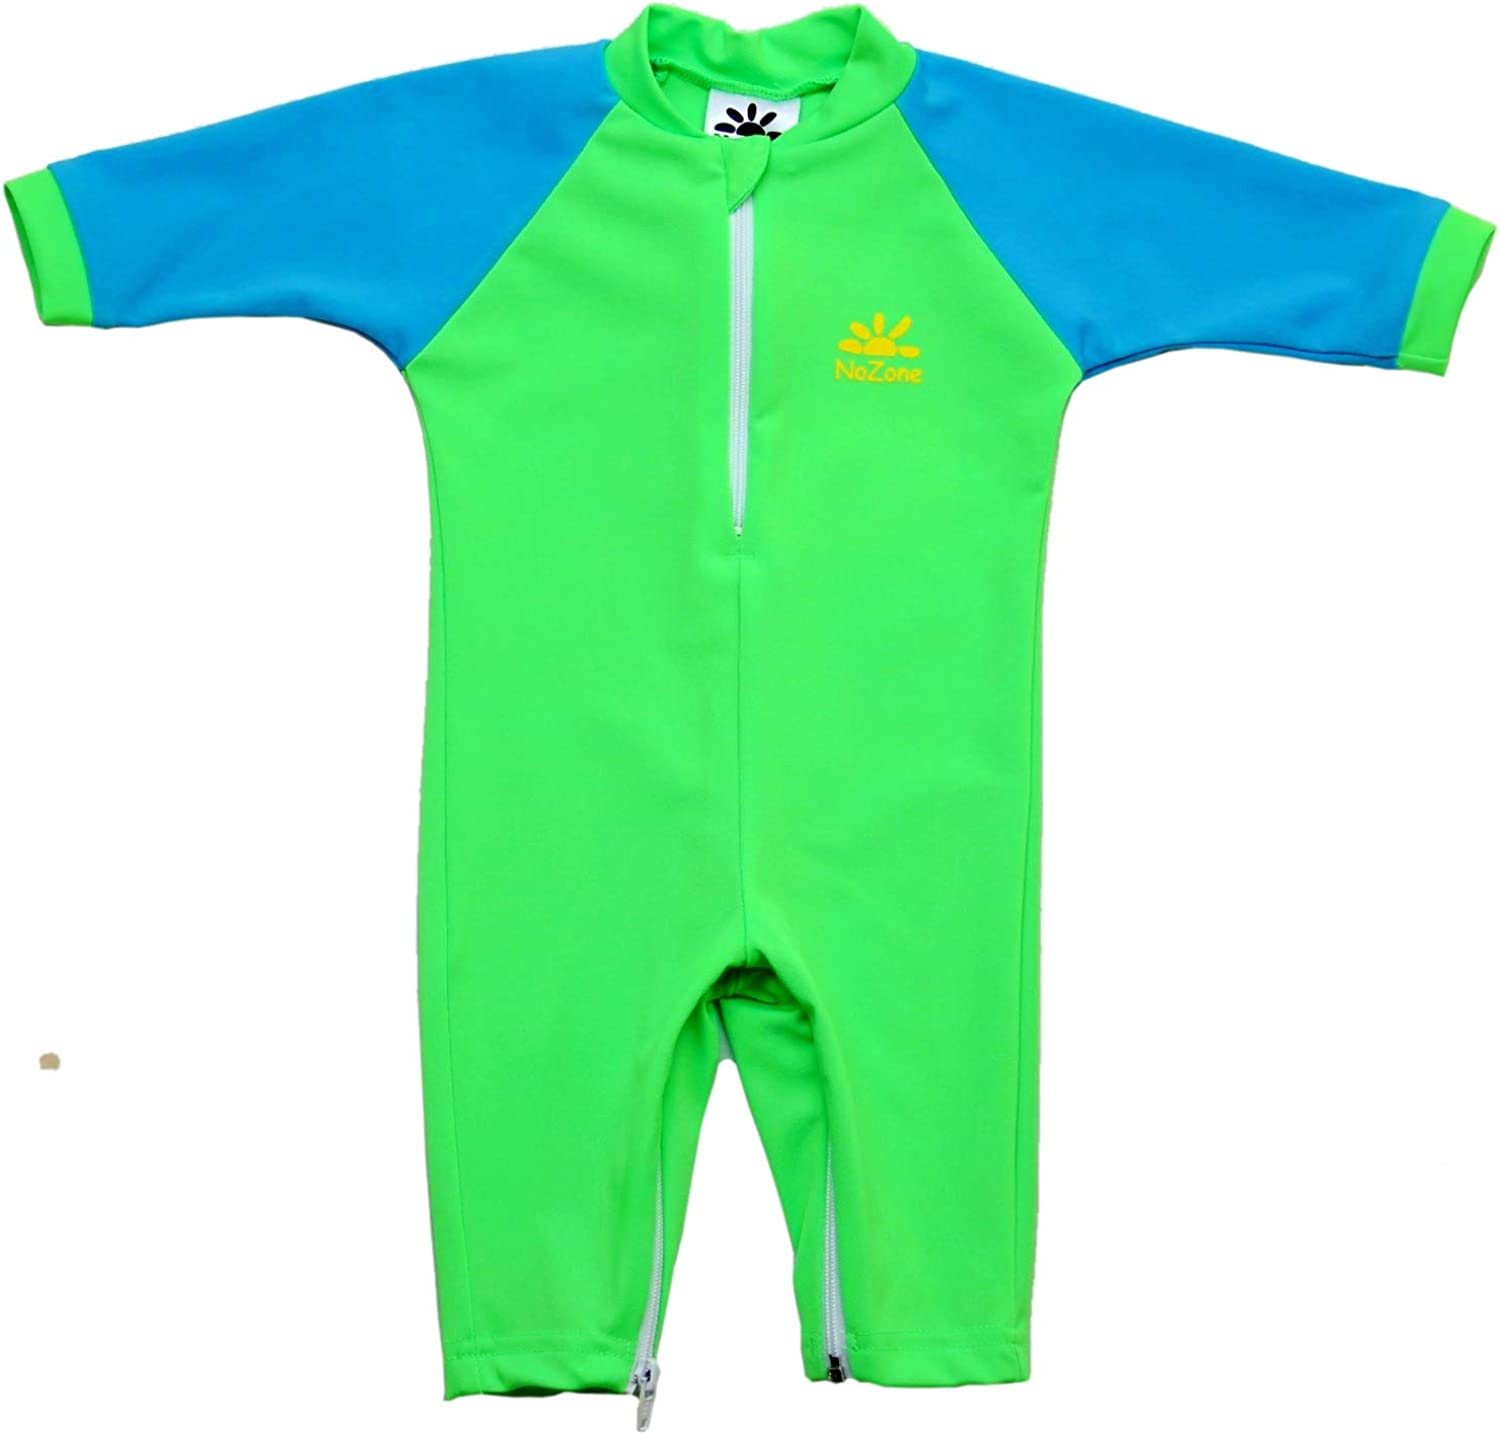 Nozone Fiji Sun Protective Baby Swimsuit in Your Choice of Colors UPF 50+